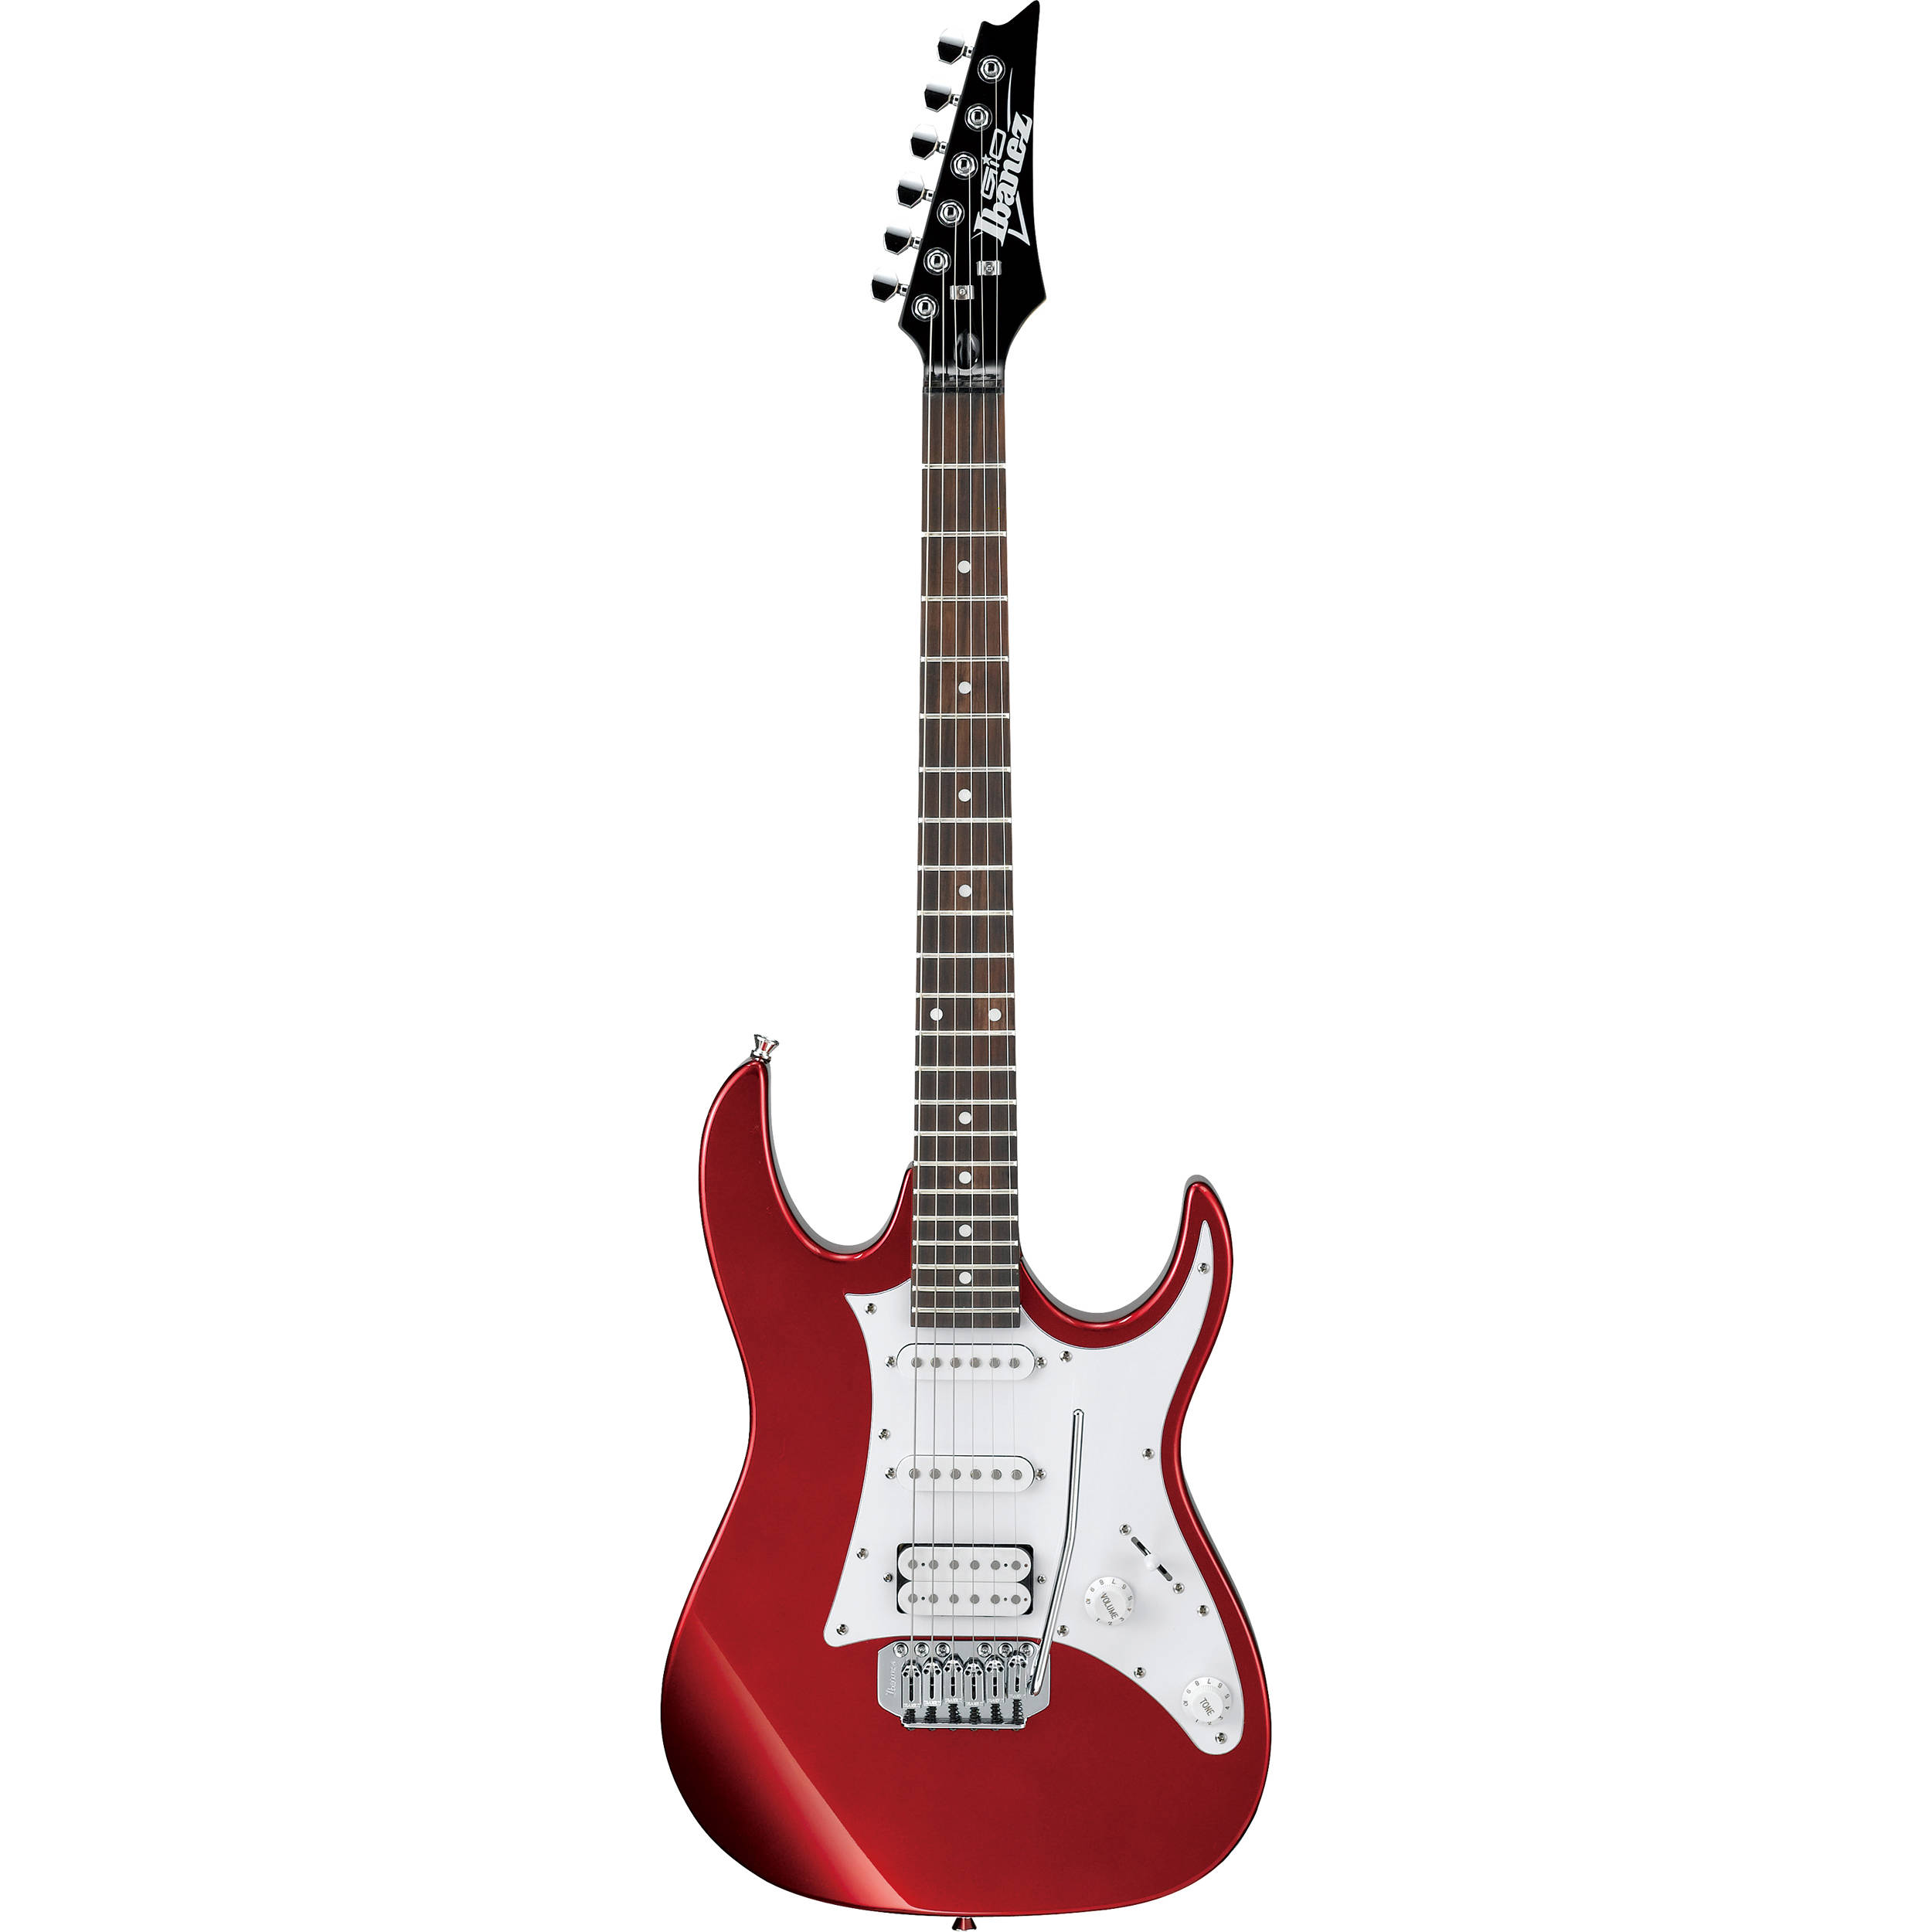 ibanez grx40z gio series electric guitar candy apple grx40zca. Black Bedroom Furniture Sets. Home Design Ideas